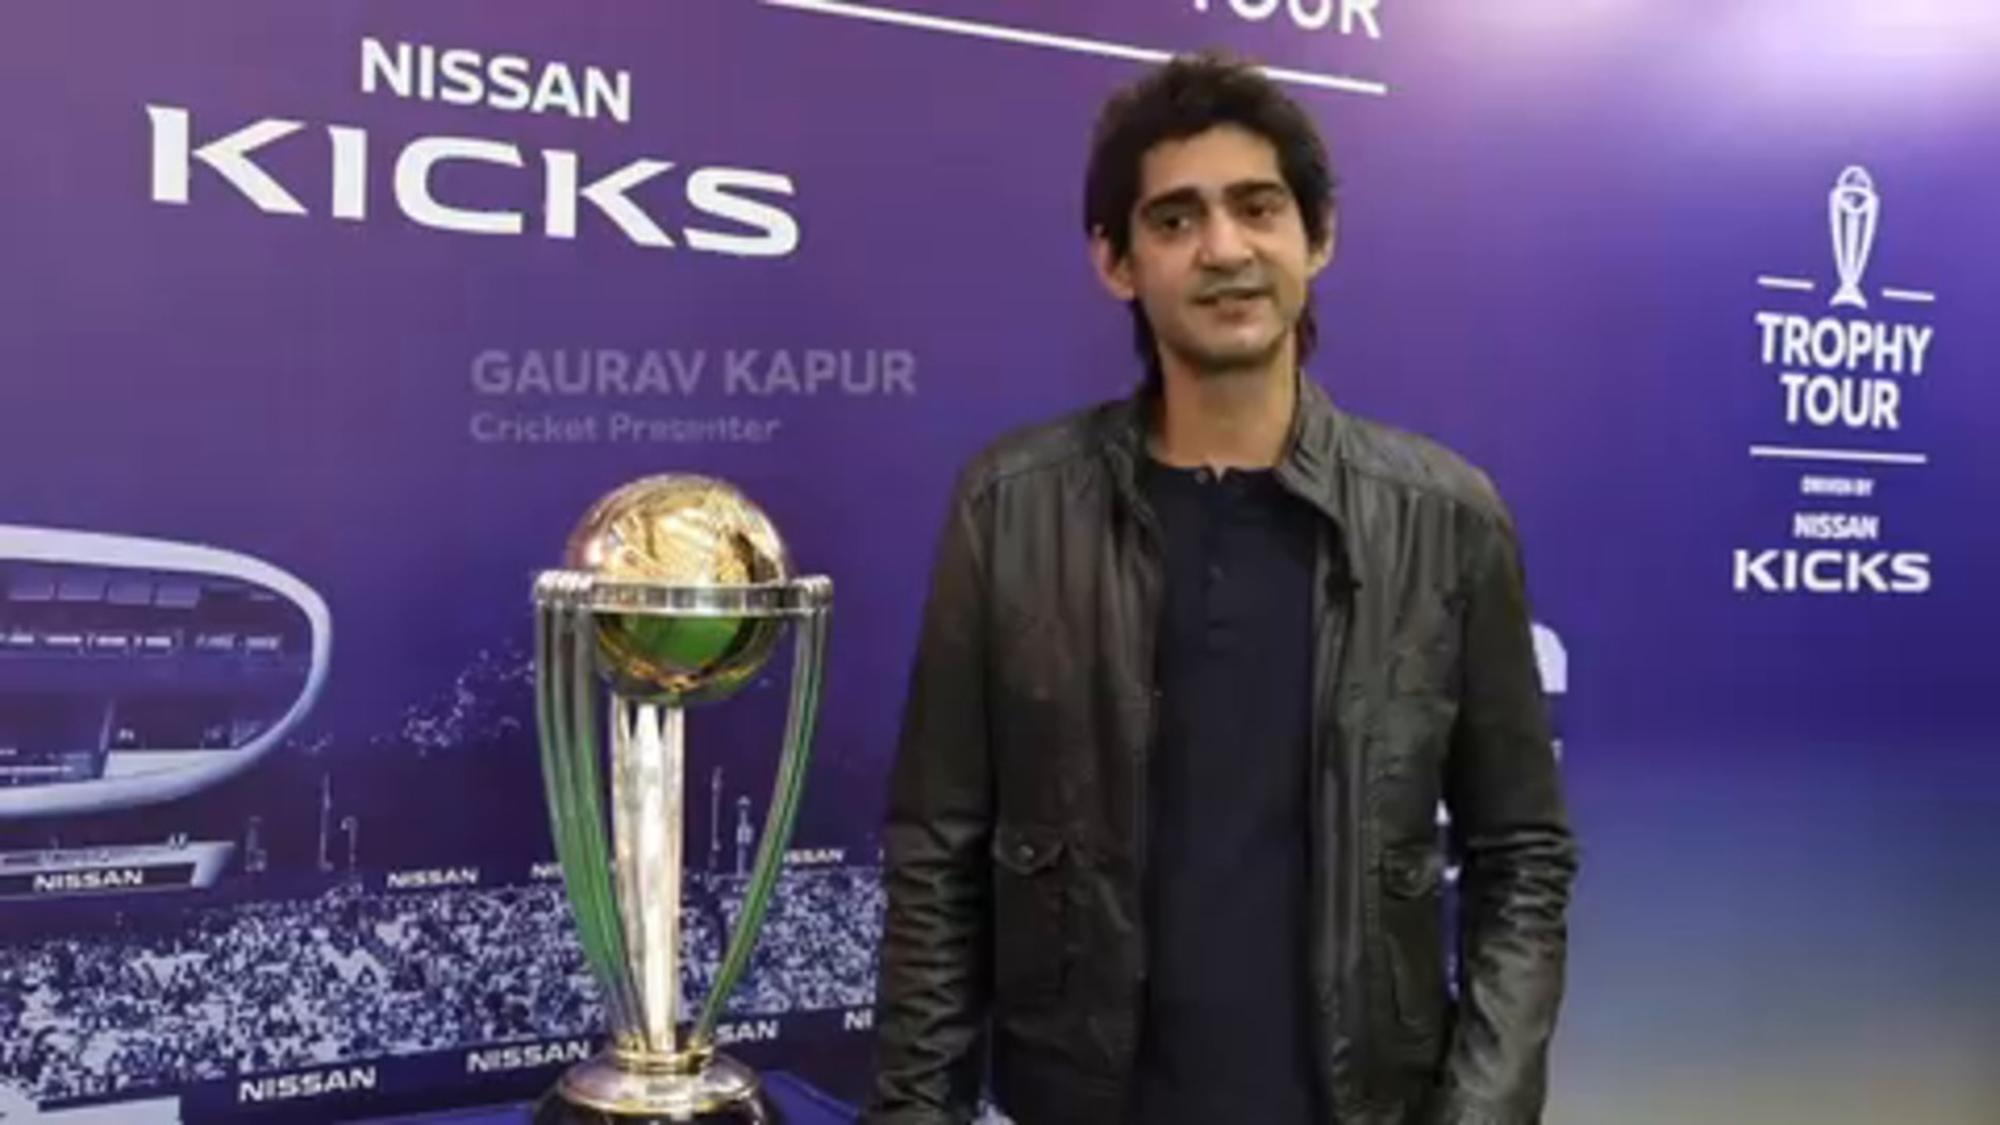 ICC CWC Trophy Tour driven by Nissan Kicks – India